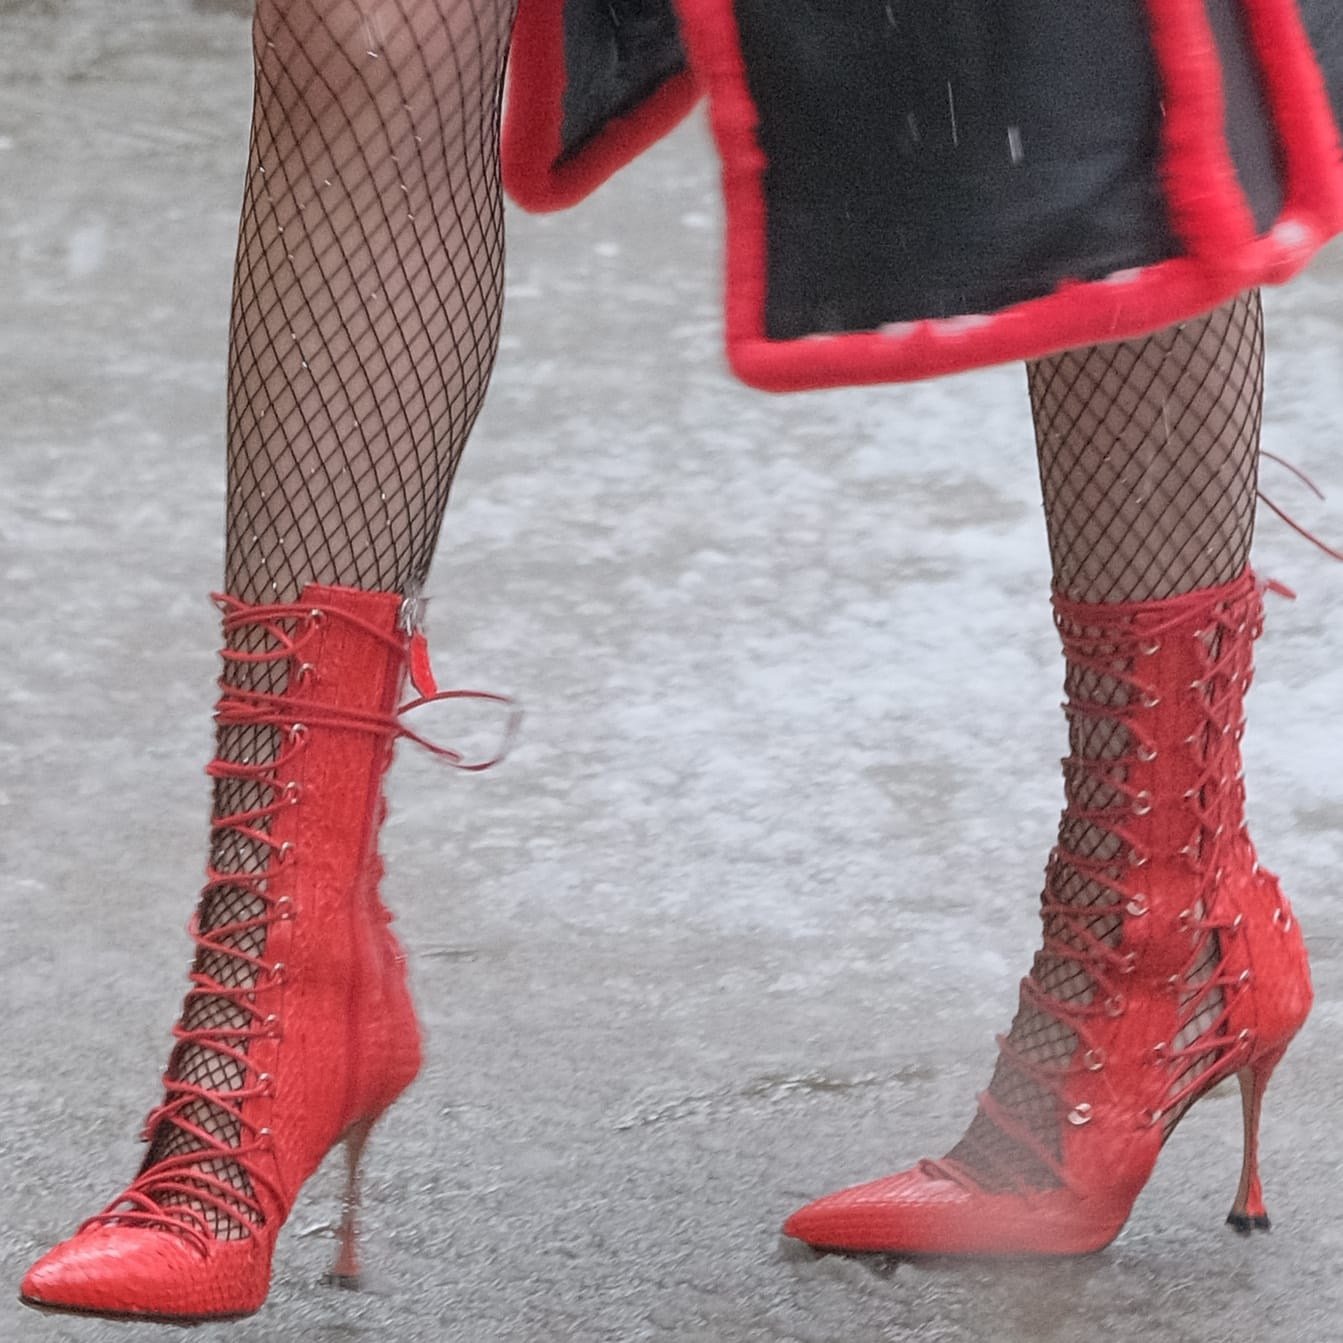 Bella Thorne's red snake 'Drury Lane' boots from Liudmila